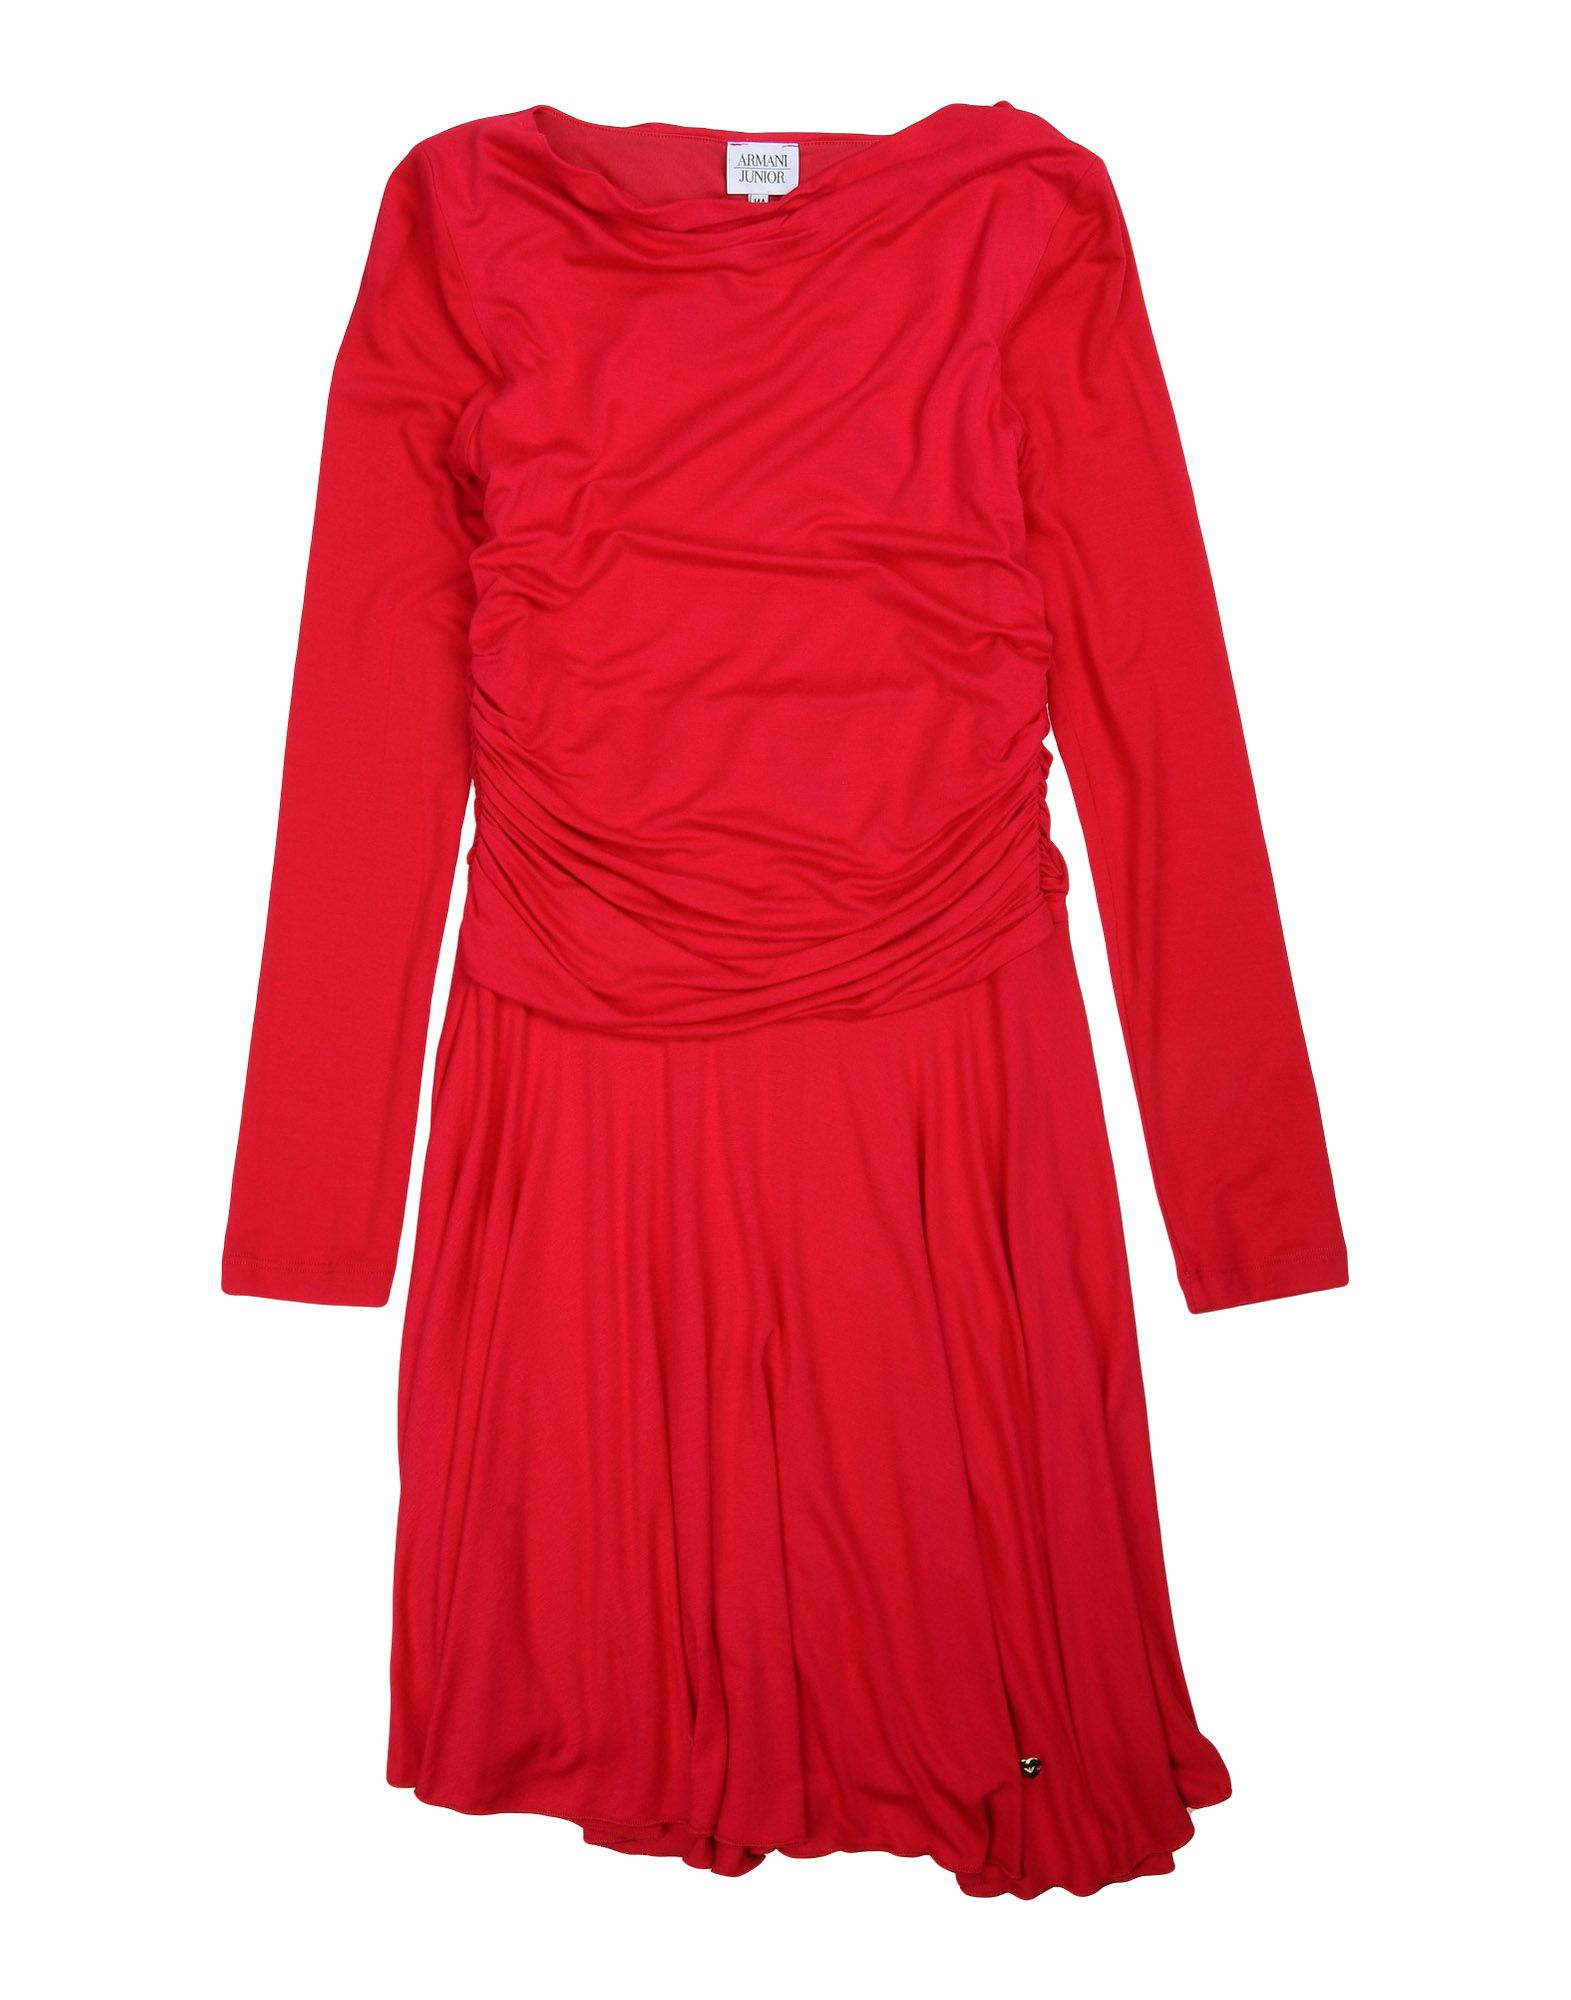 ARMANI JUNIOR Dress in Red